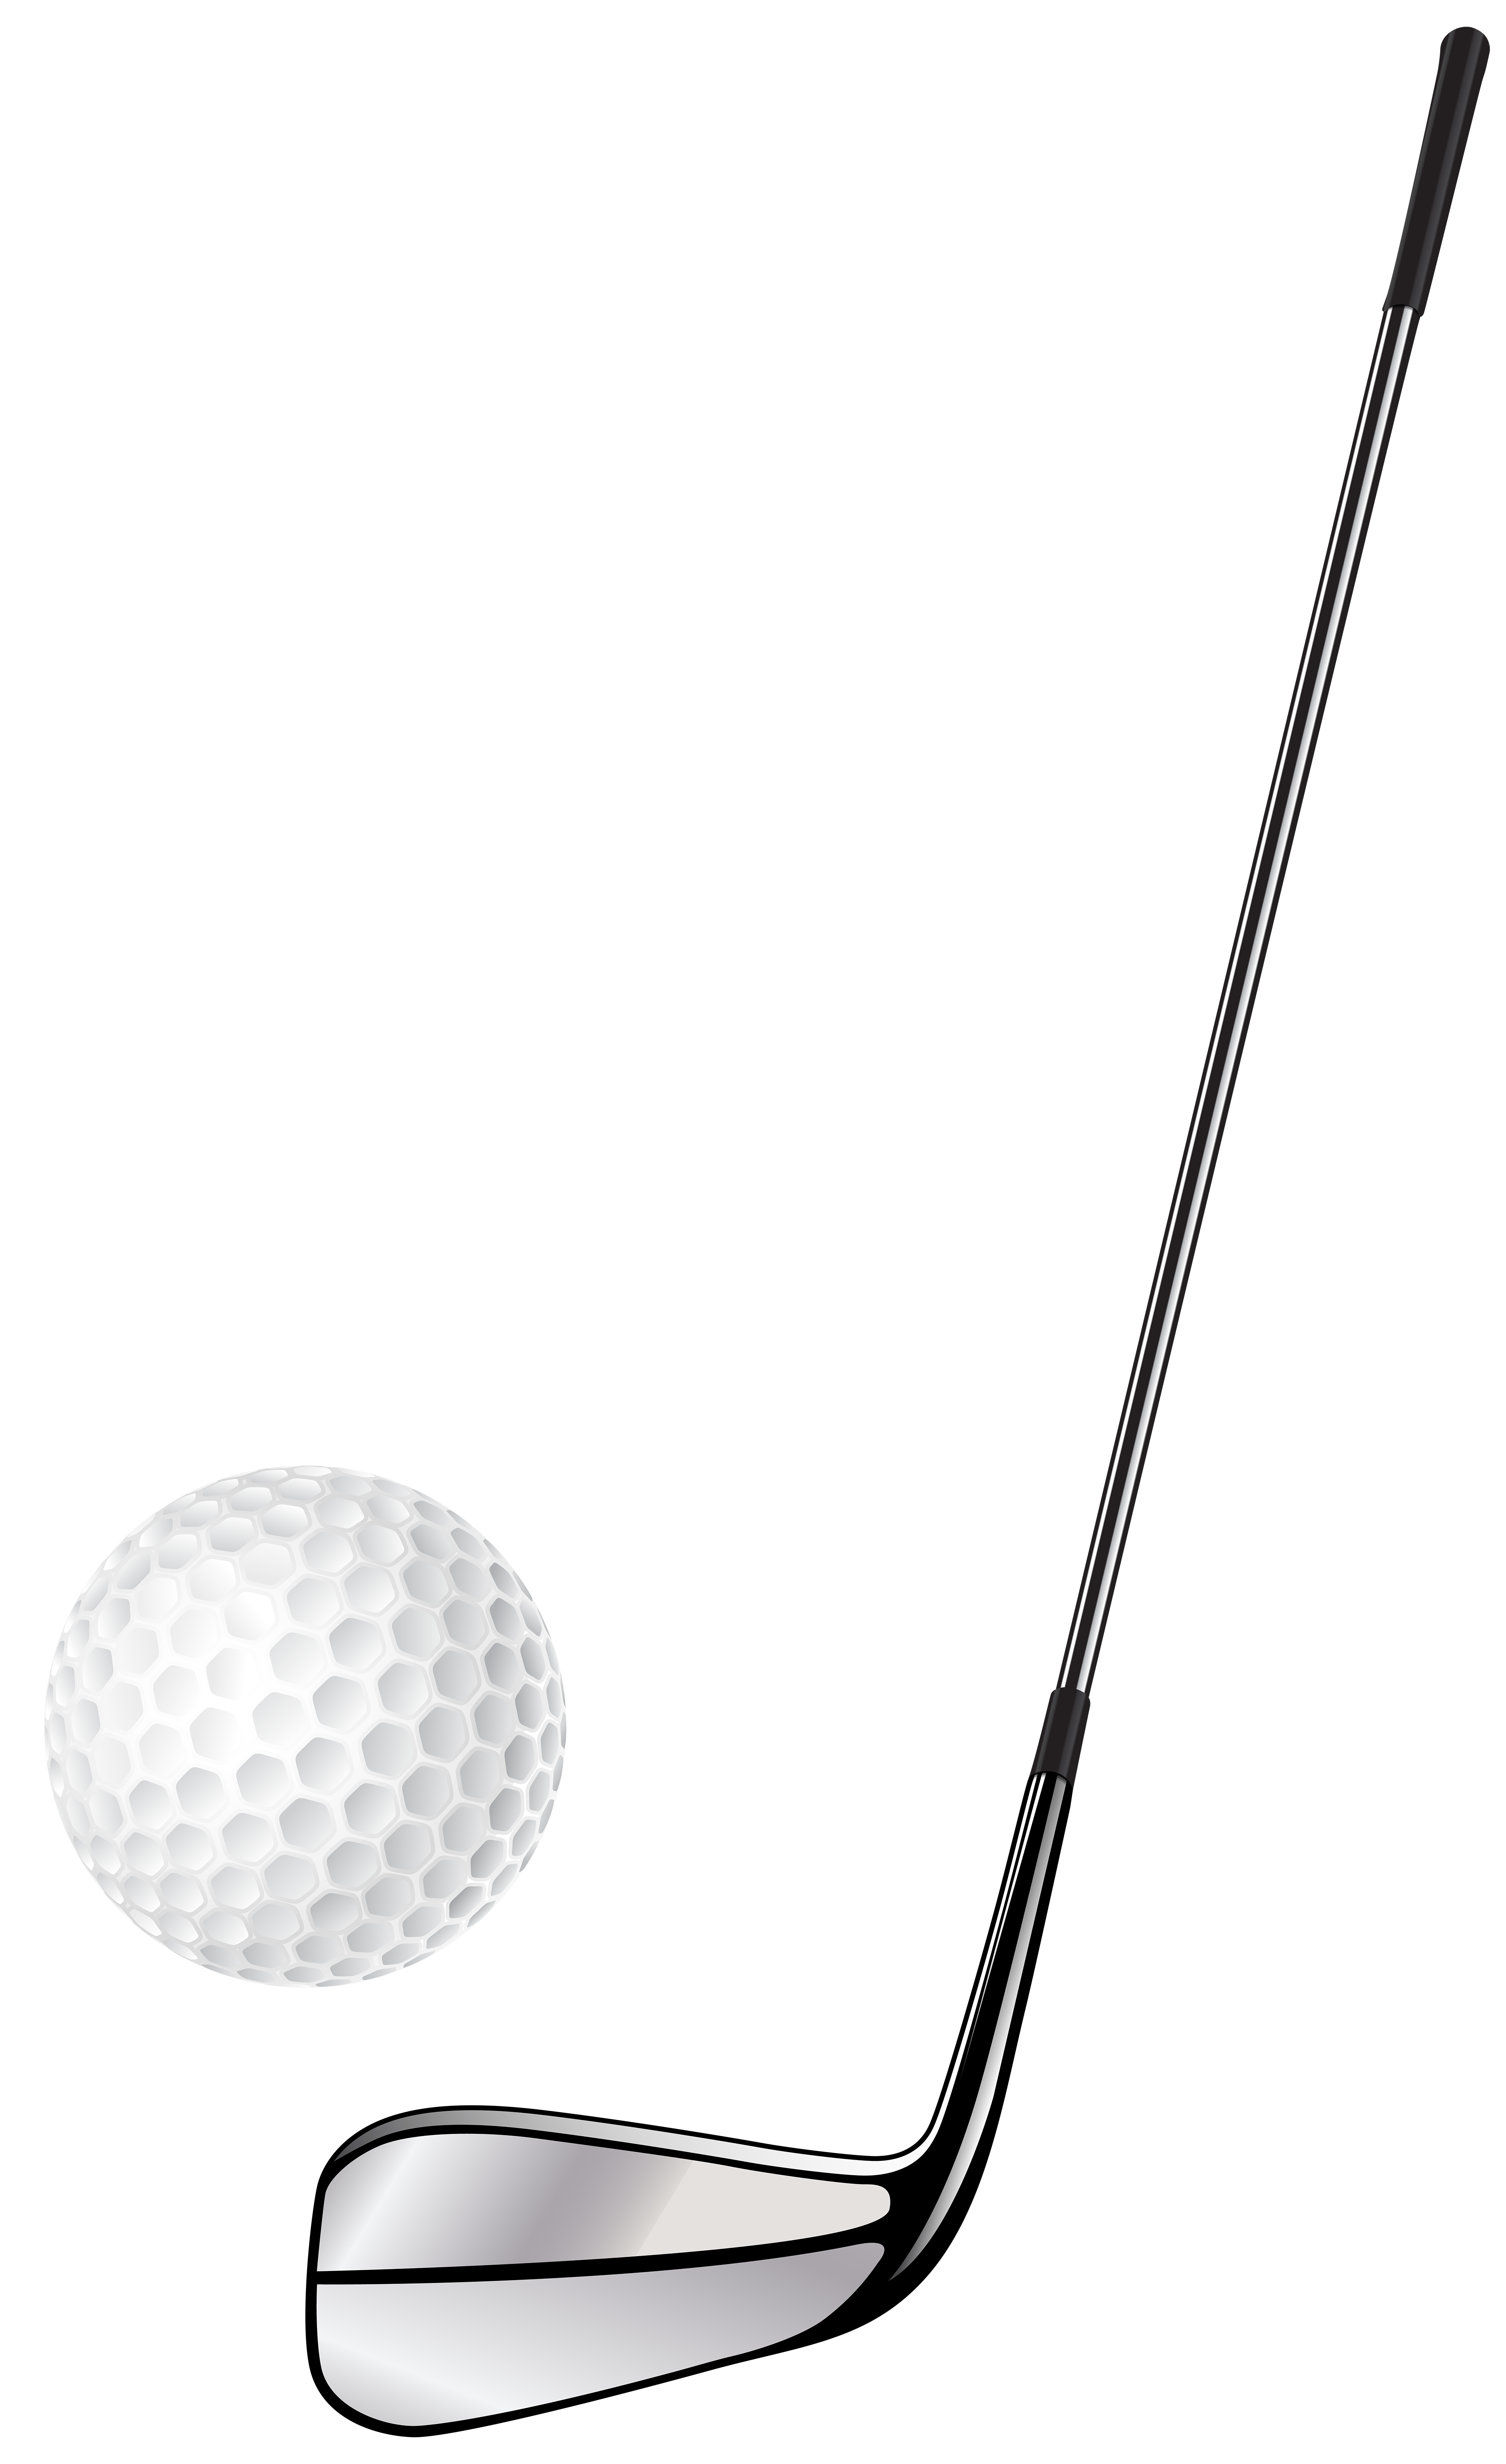 Cross golf clubs clipart svg stock 28+ Collection of Golf Ball Clipart Png | High quality, free ... svg stock